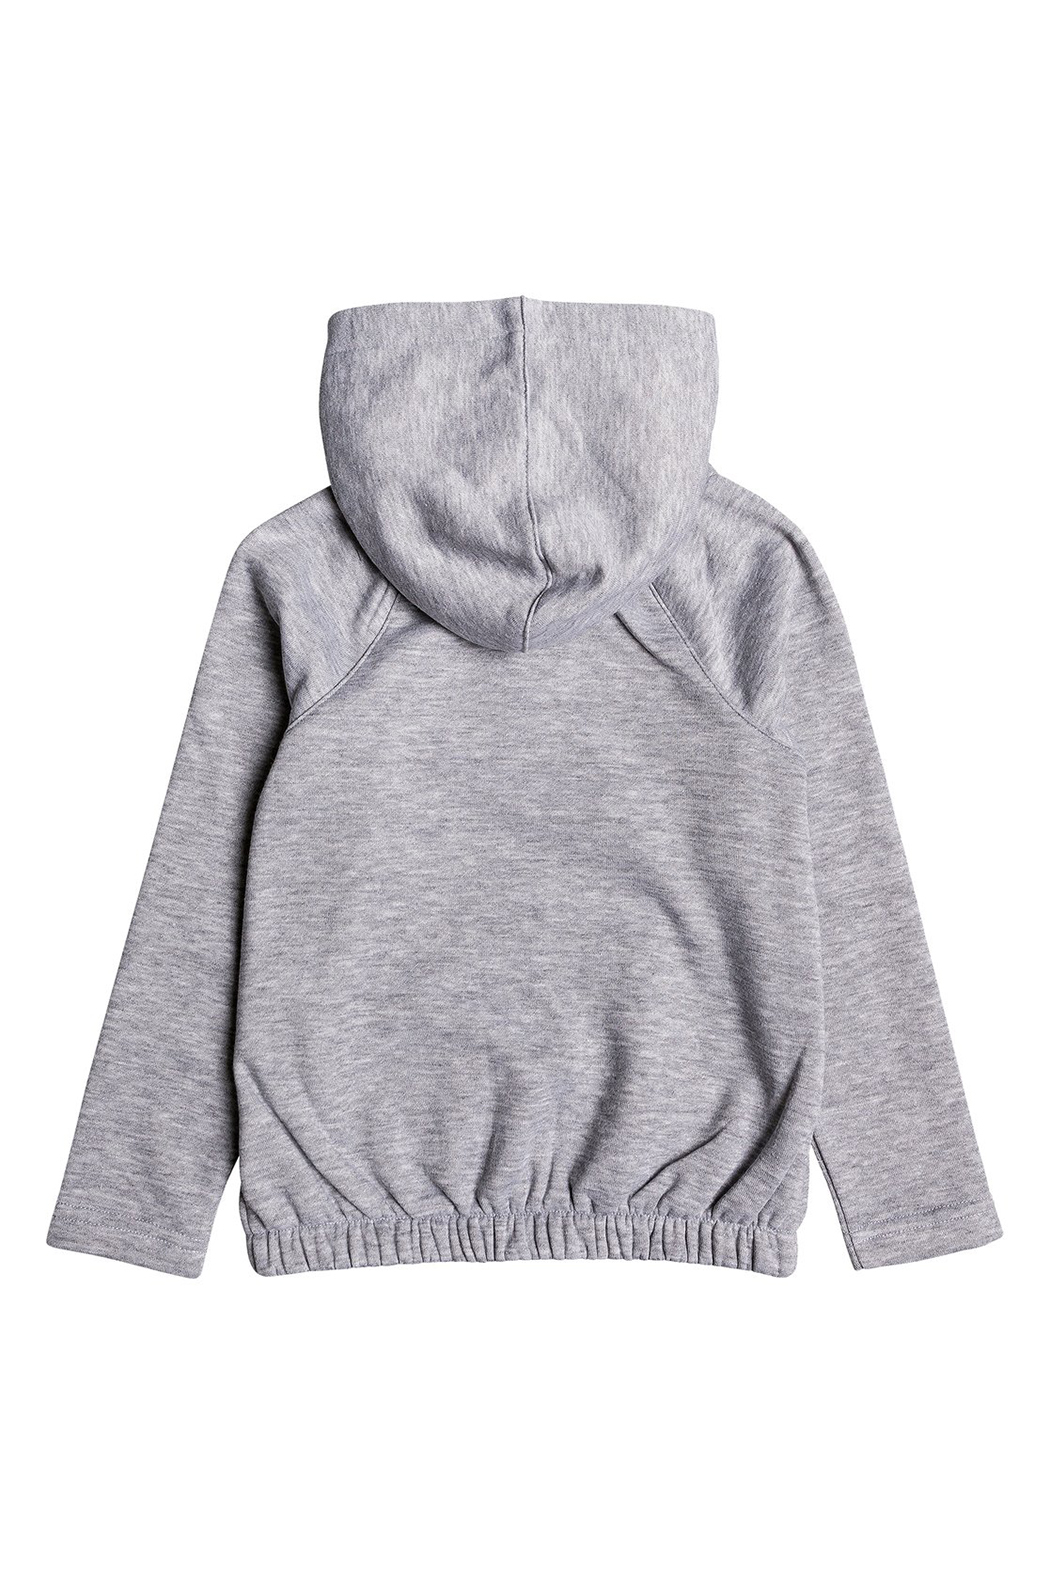 Roxy Lazy Love Zip Up Hoodie - Front Full Image